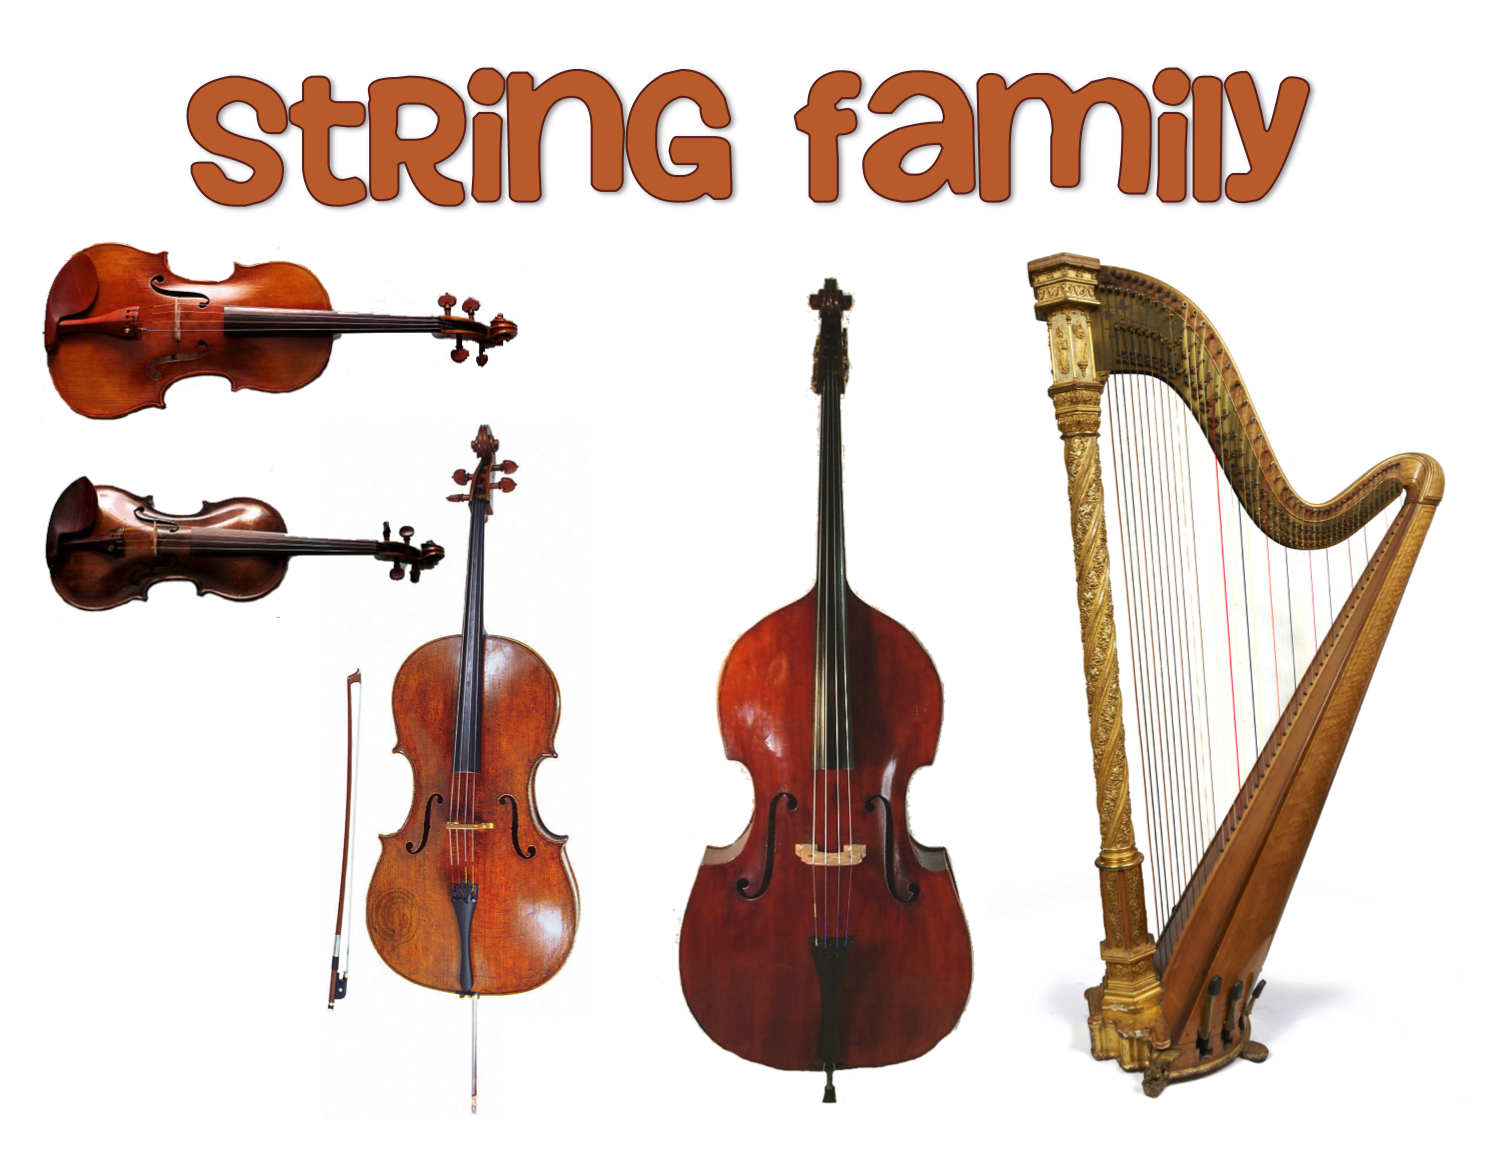 Harp clipart orchestral Of text Glogster music video